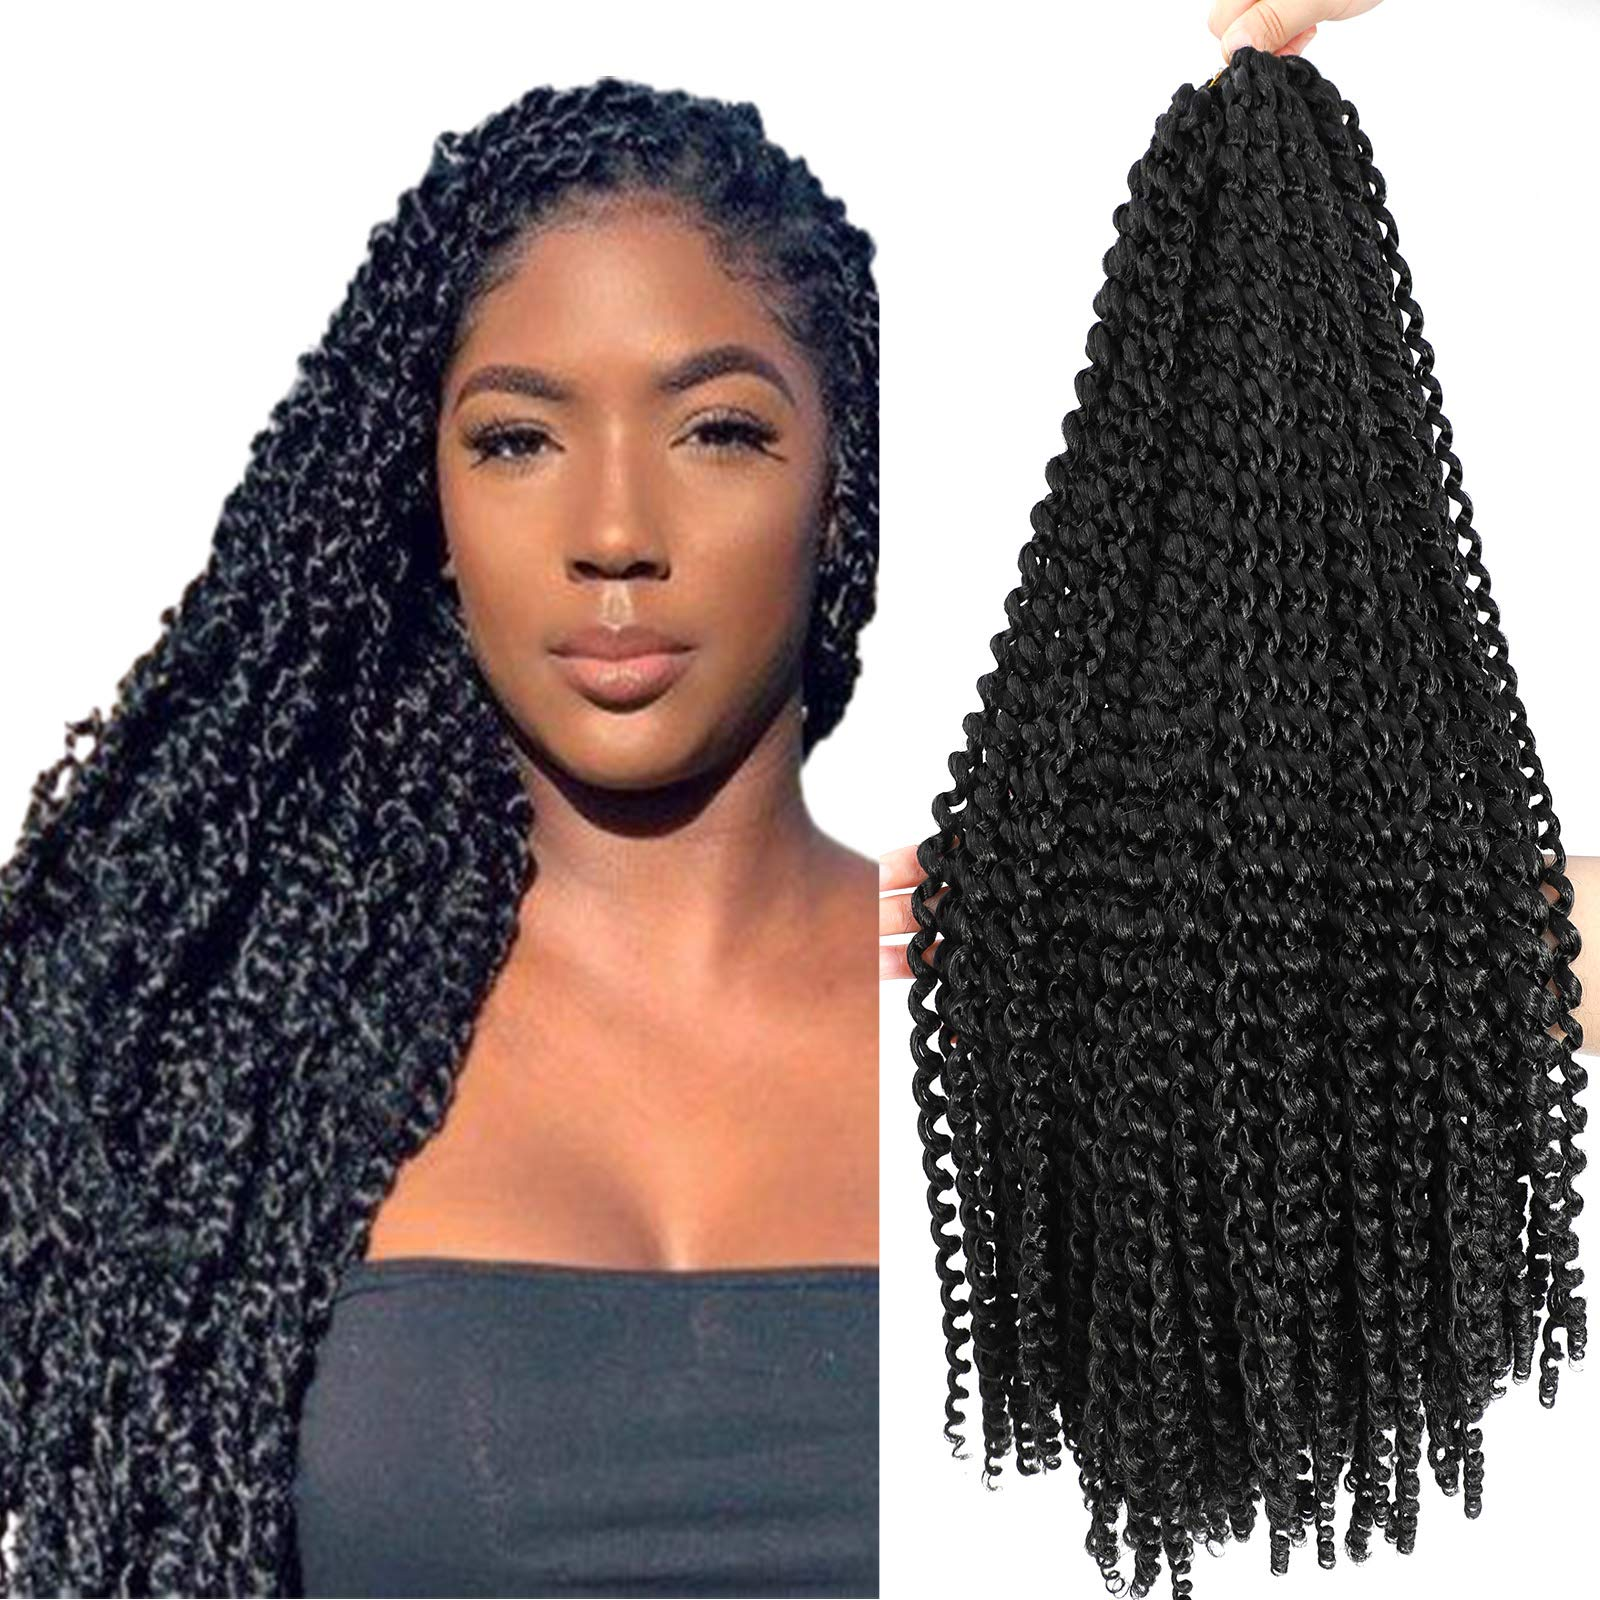 Passion twist hair 24 inch Freetress Water Wave Crochet Braiding Synthetic Hair Extensions (24 inch 1pack, 1B)